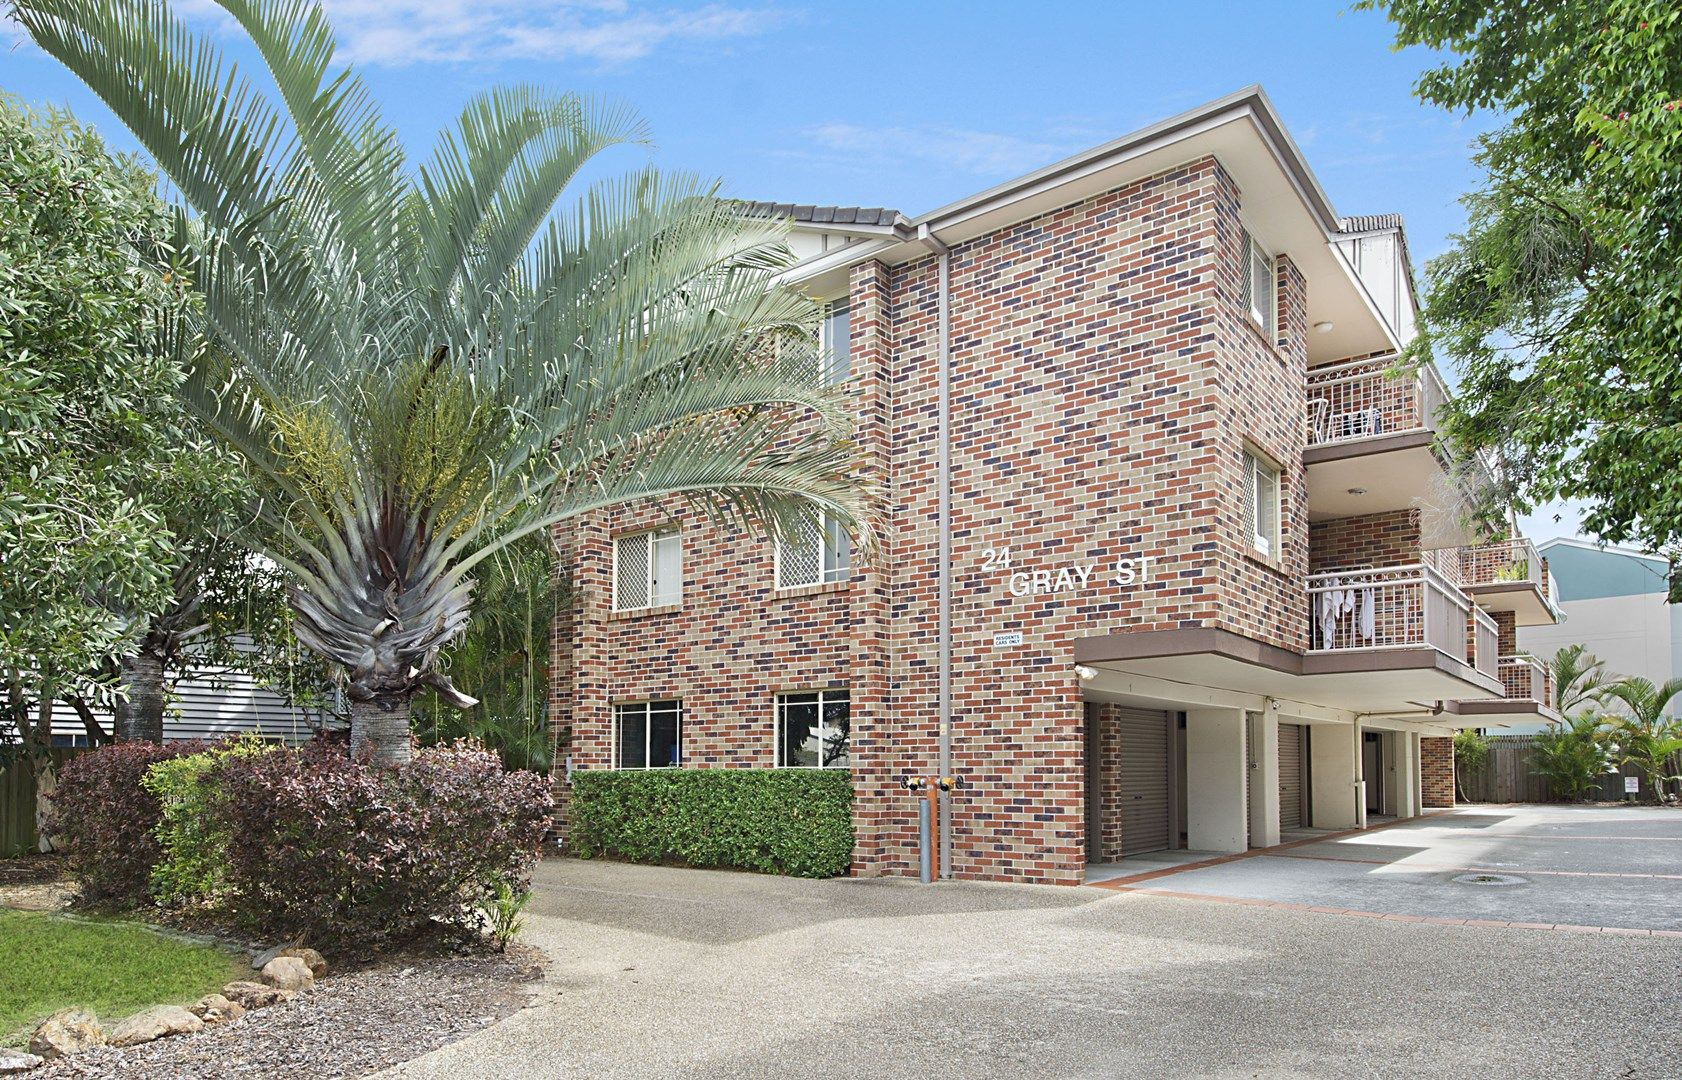 1/22-24 Gray Street, Southport QLD 4215, Image 0